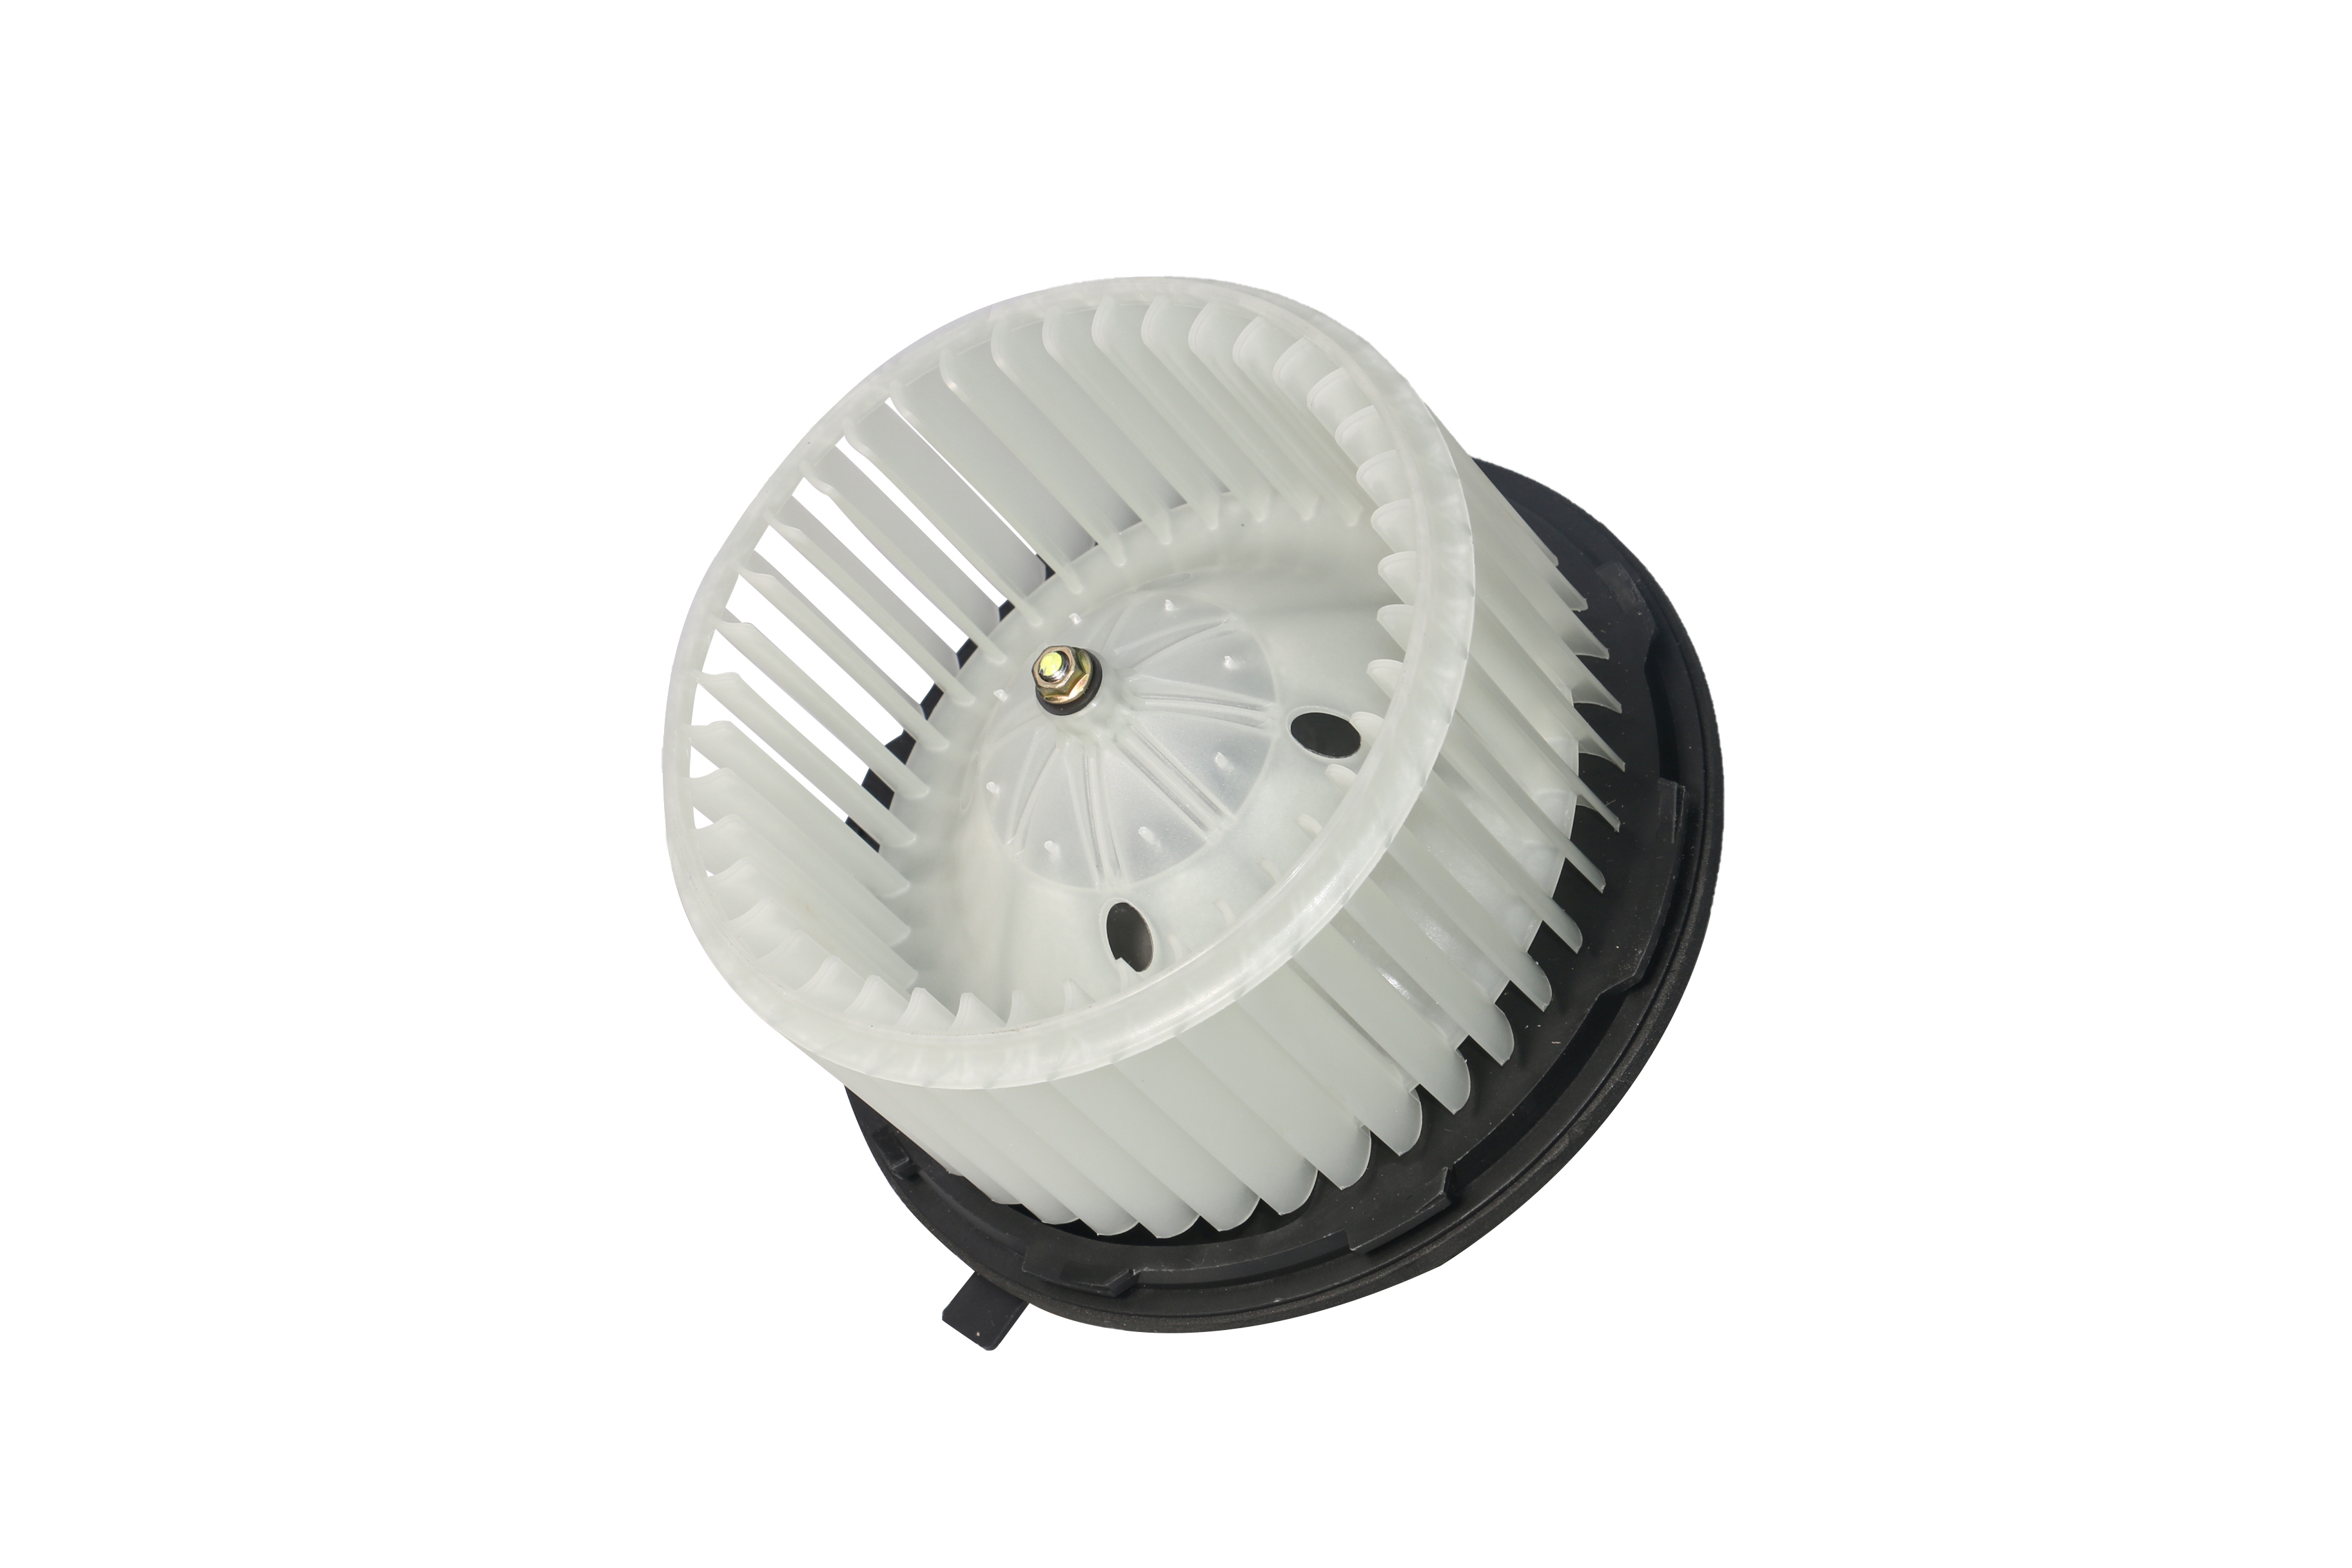 AC Heater Blower Motor - Fits Chevy Silverado, Tahoe, Avalanche, Suburban, Escalade, ESV, GMC Sierra, Yukon, Hummer H2 - Replaces# 15-81683 Image